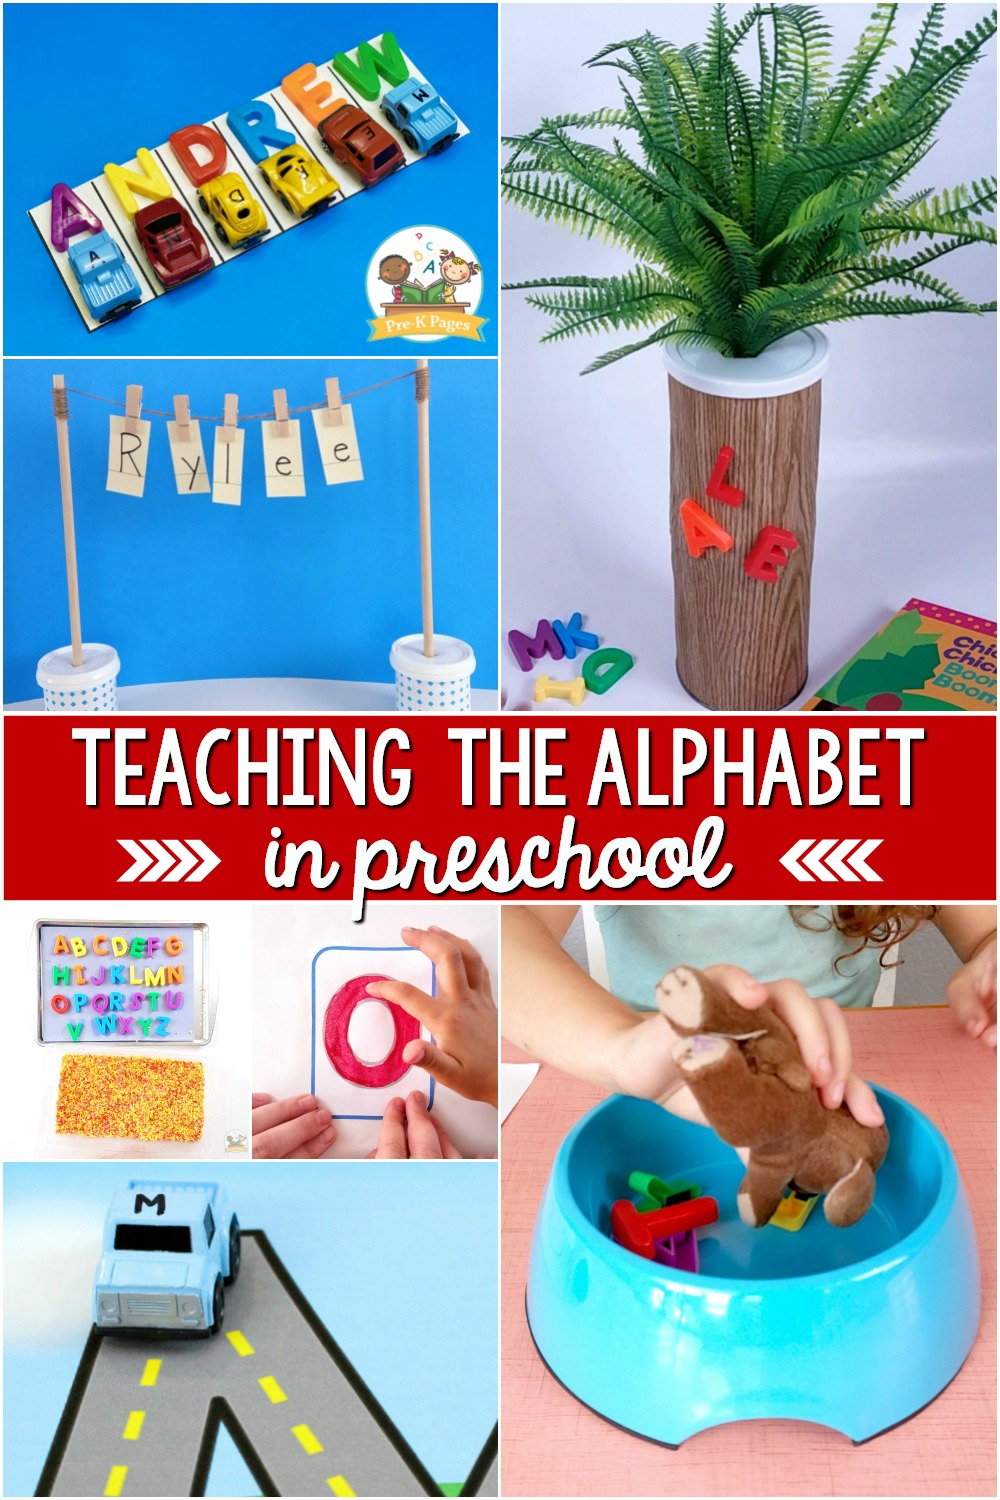 Teaching the alphabet in preschool